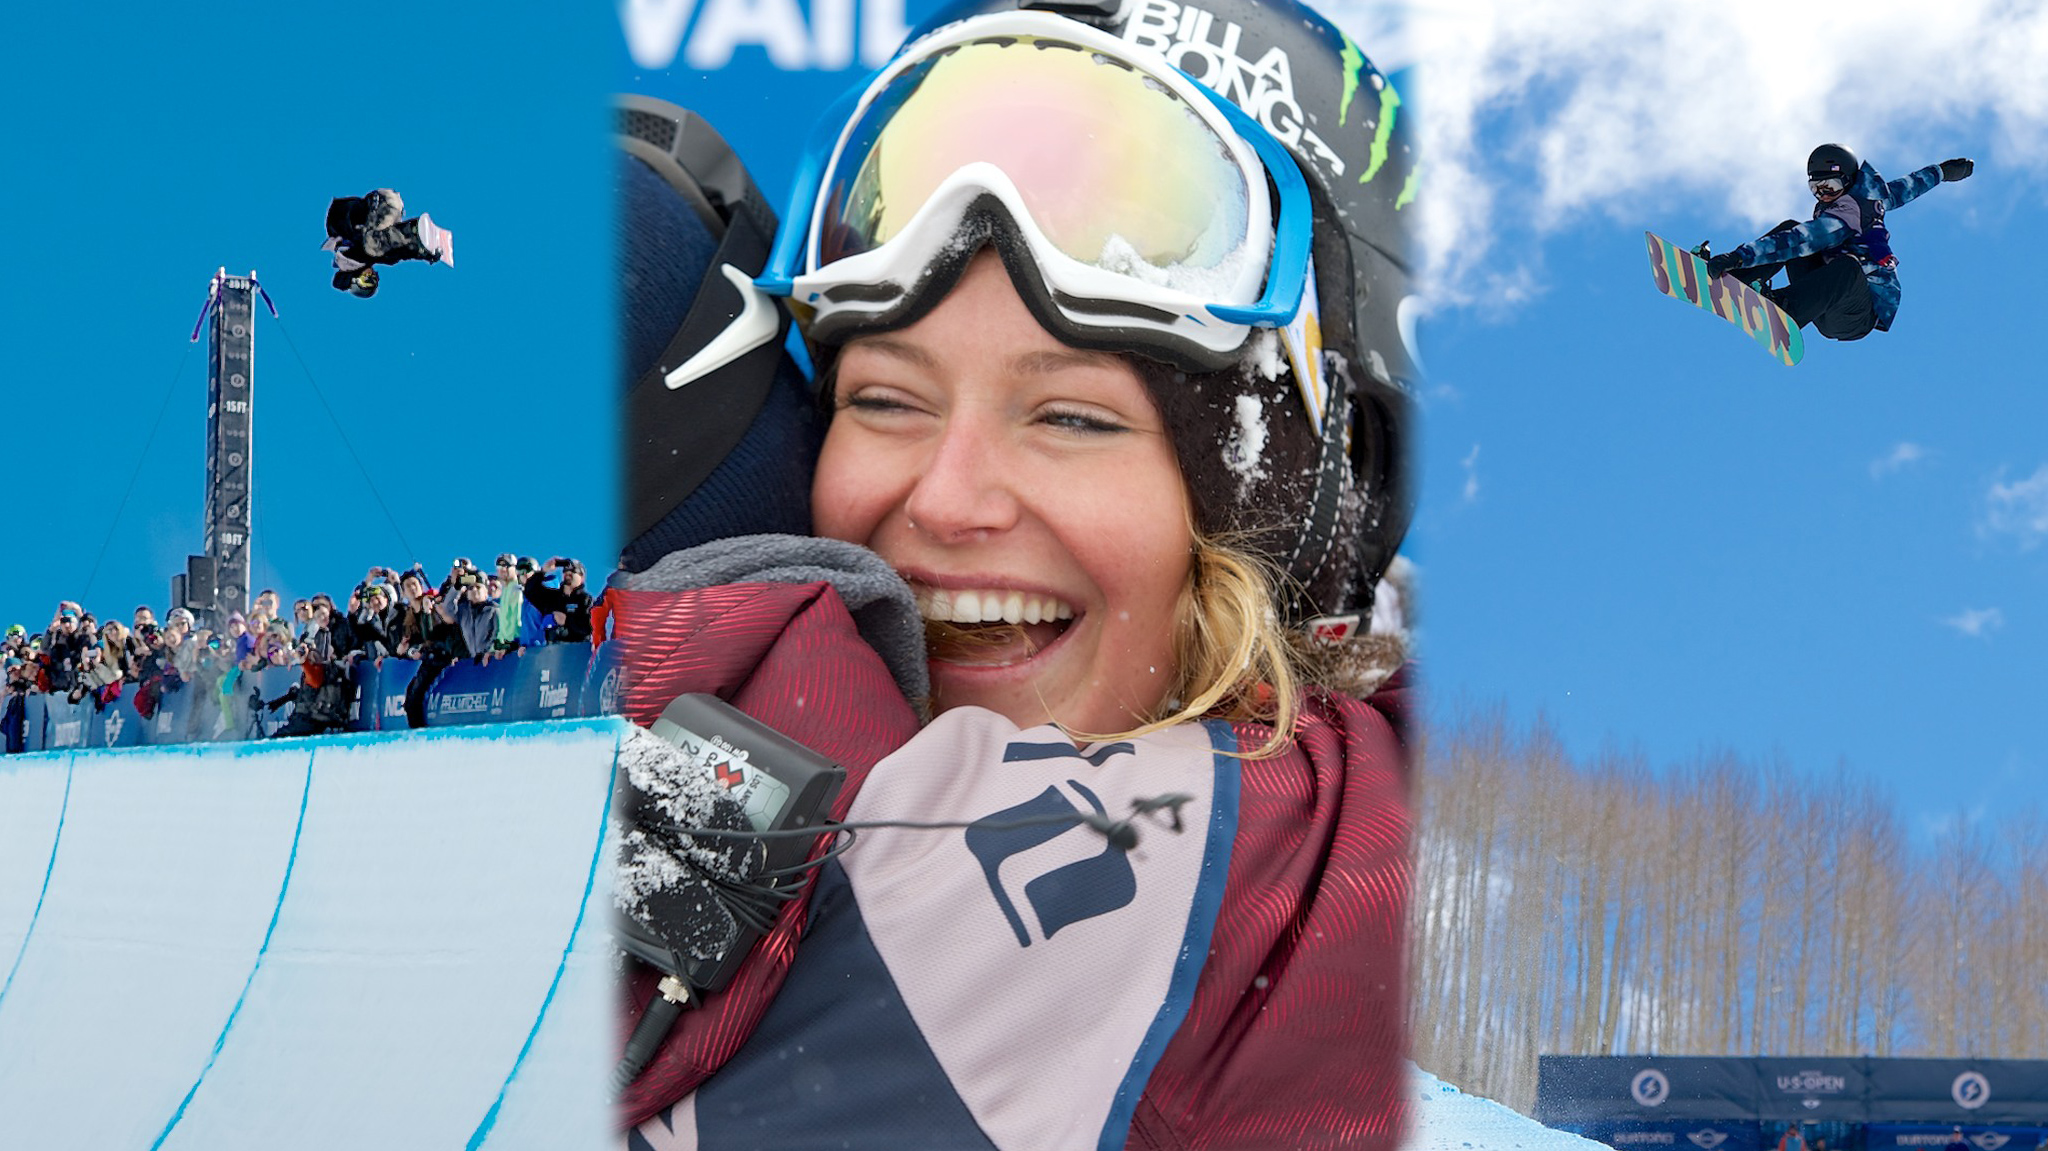 Hiraoka, Anderson and Clark took home individual champion titles for Men's Halfpipe, Women's Slopestyle and Women's Halfpipe, respectively.